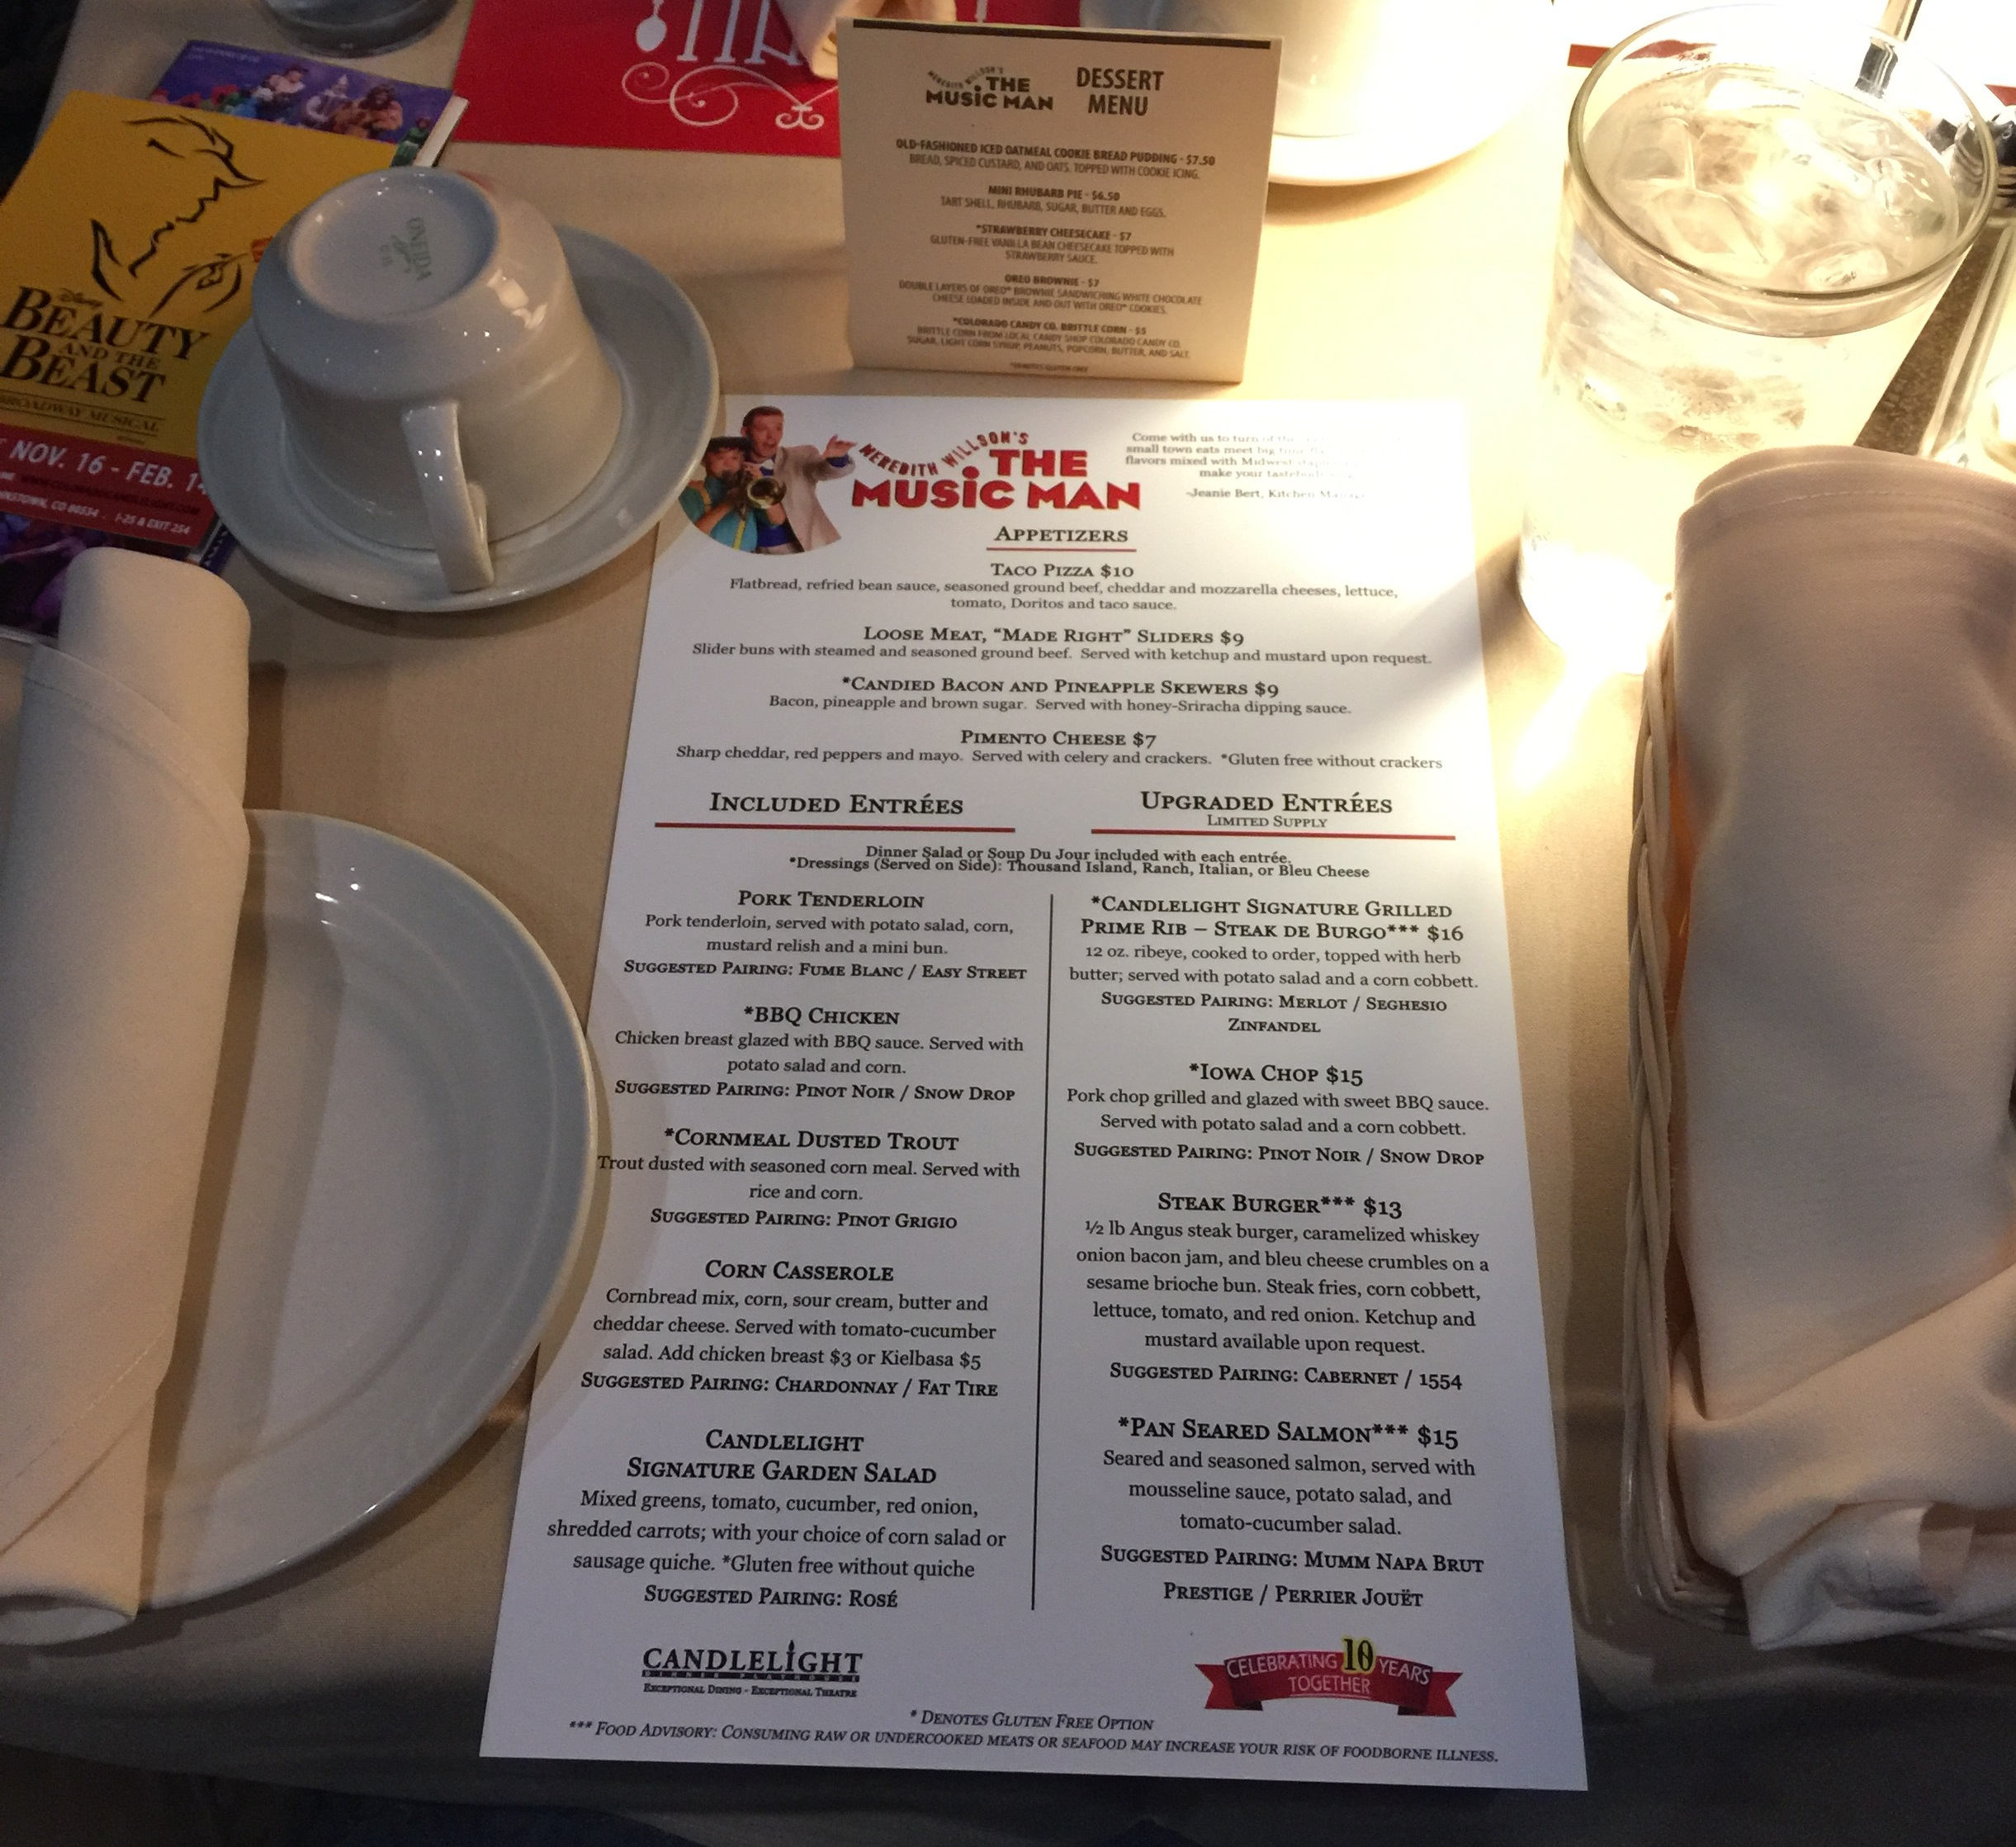 The specially-designed menu for The Music Man